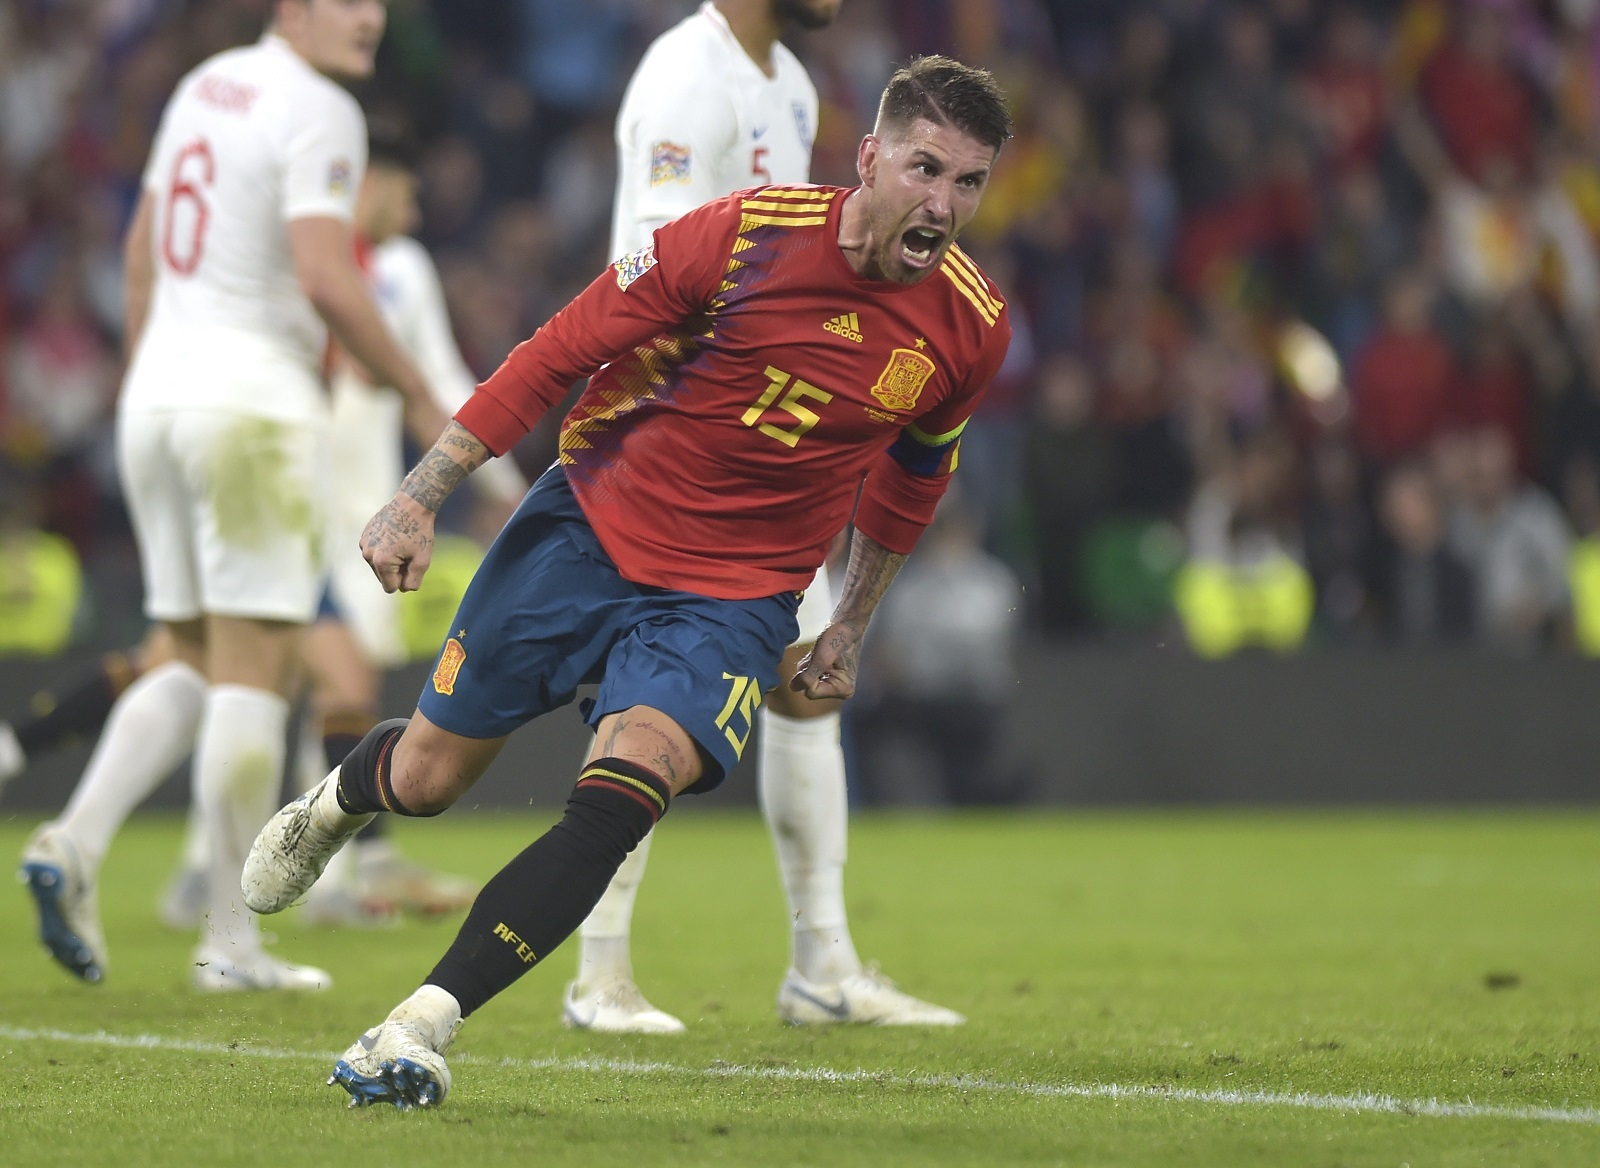 Espagne Angleterre Ramos Reagit A Son Agression Sur Sterling Jo